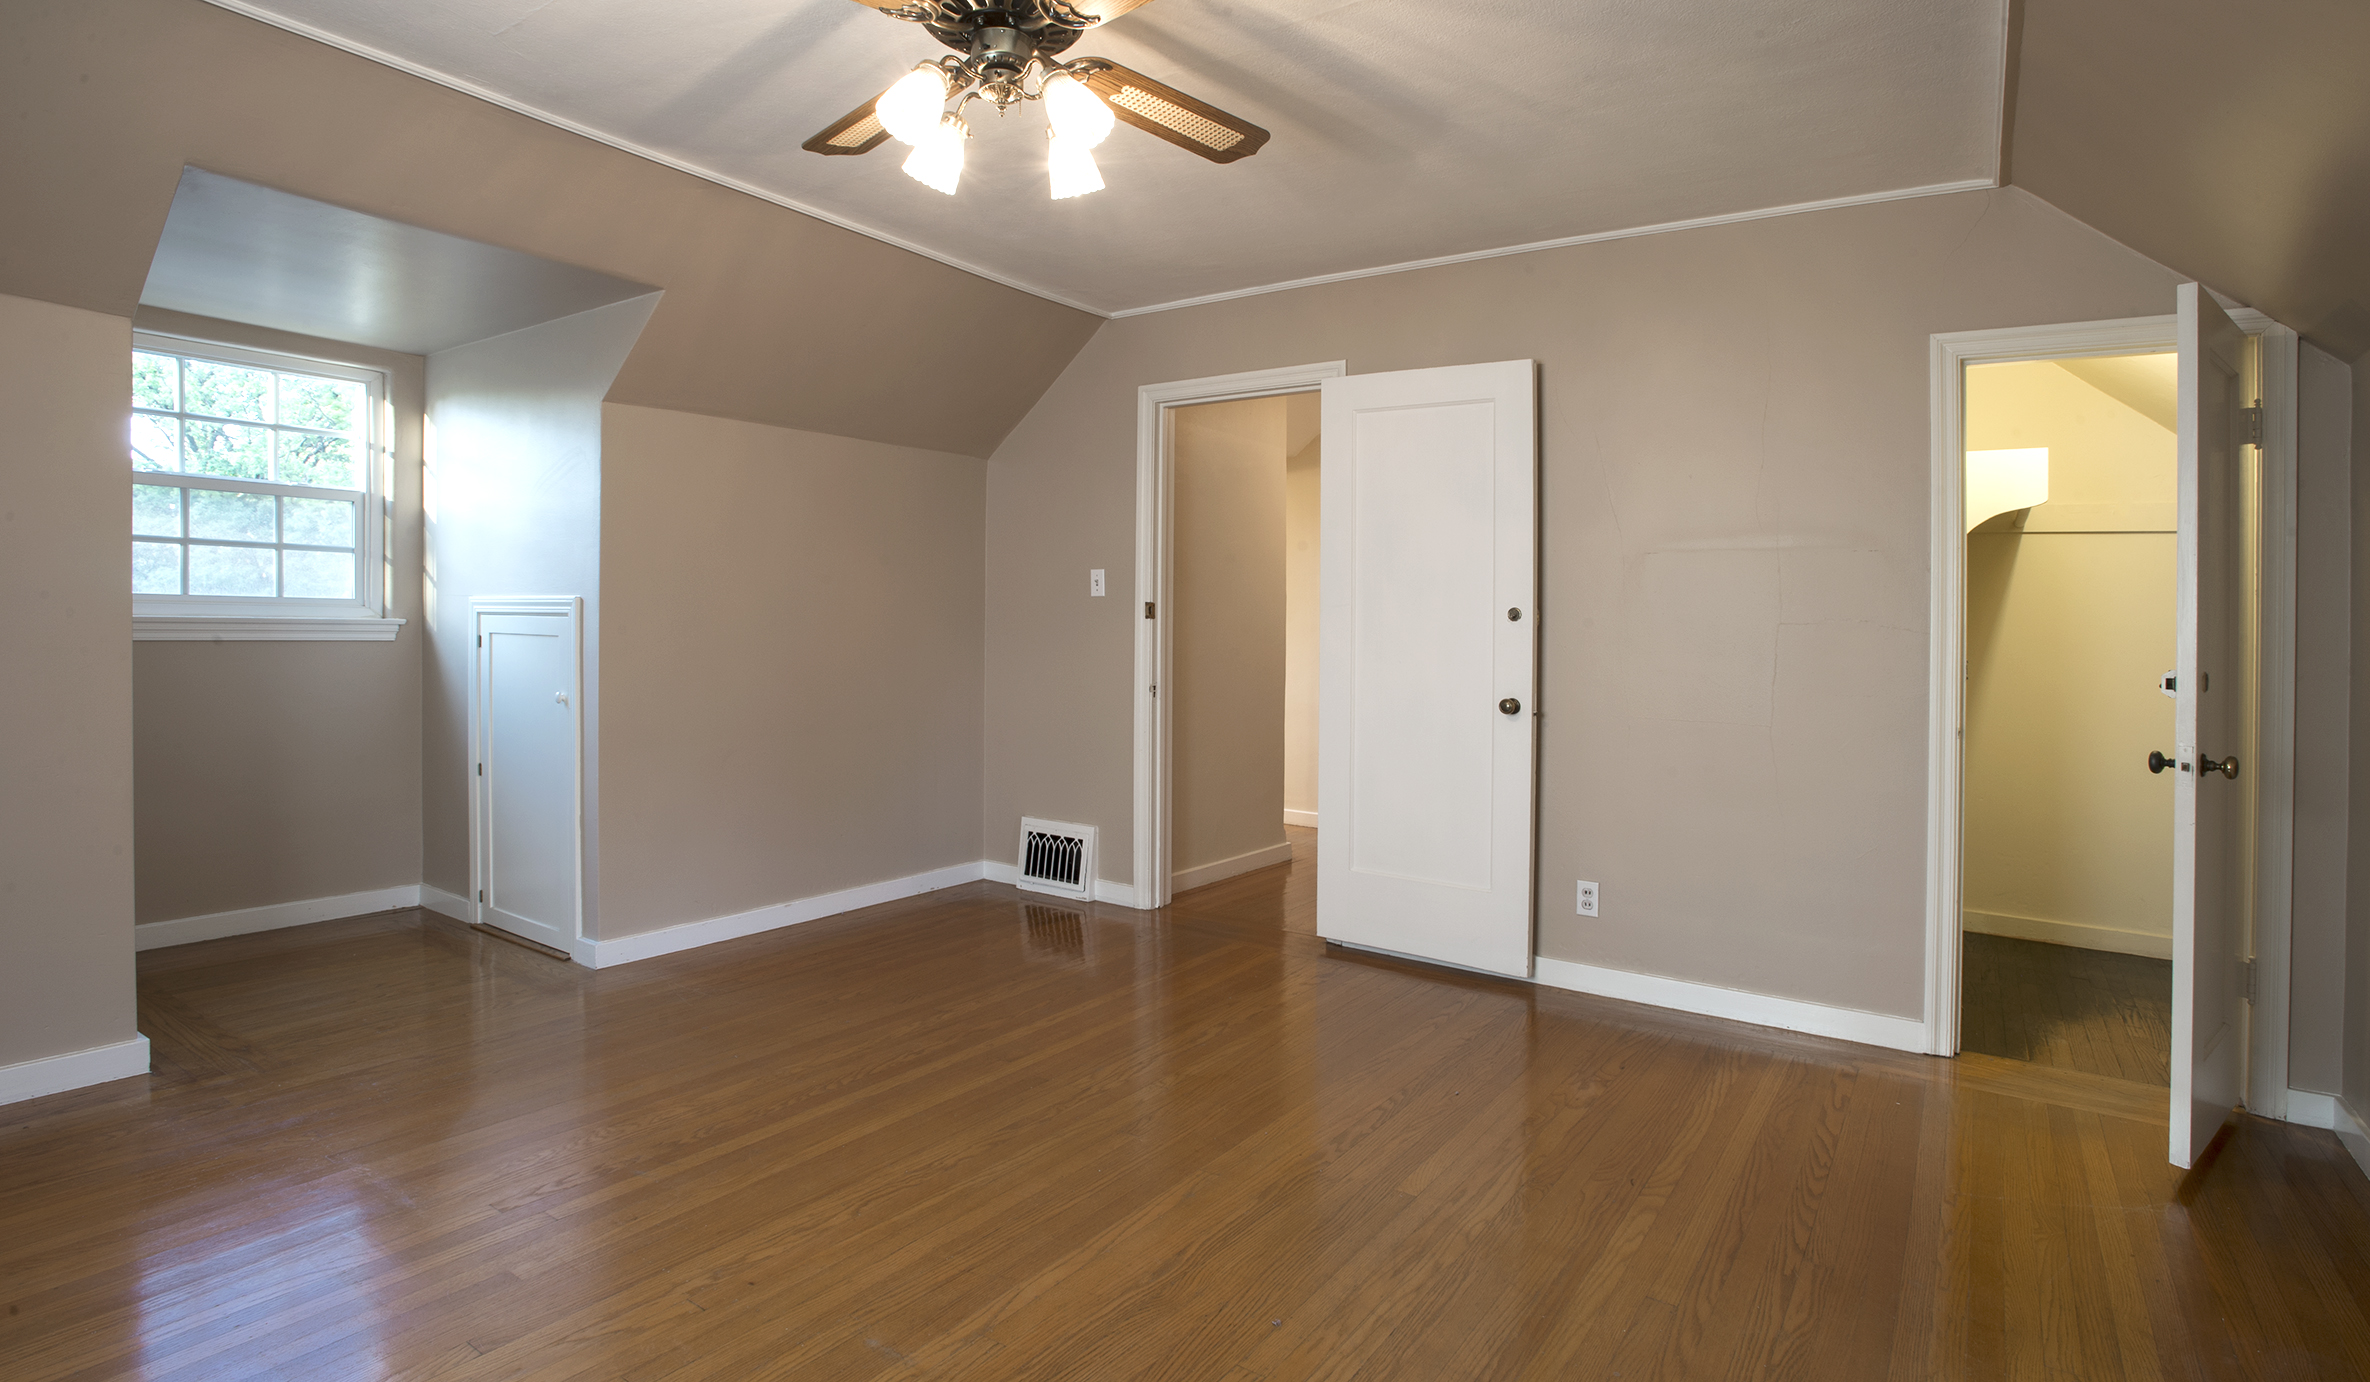 11th Ave, Bdrm, diff angle.jpg